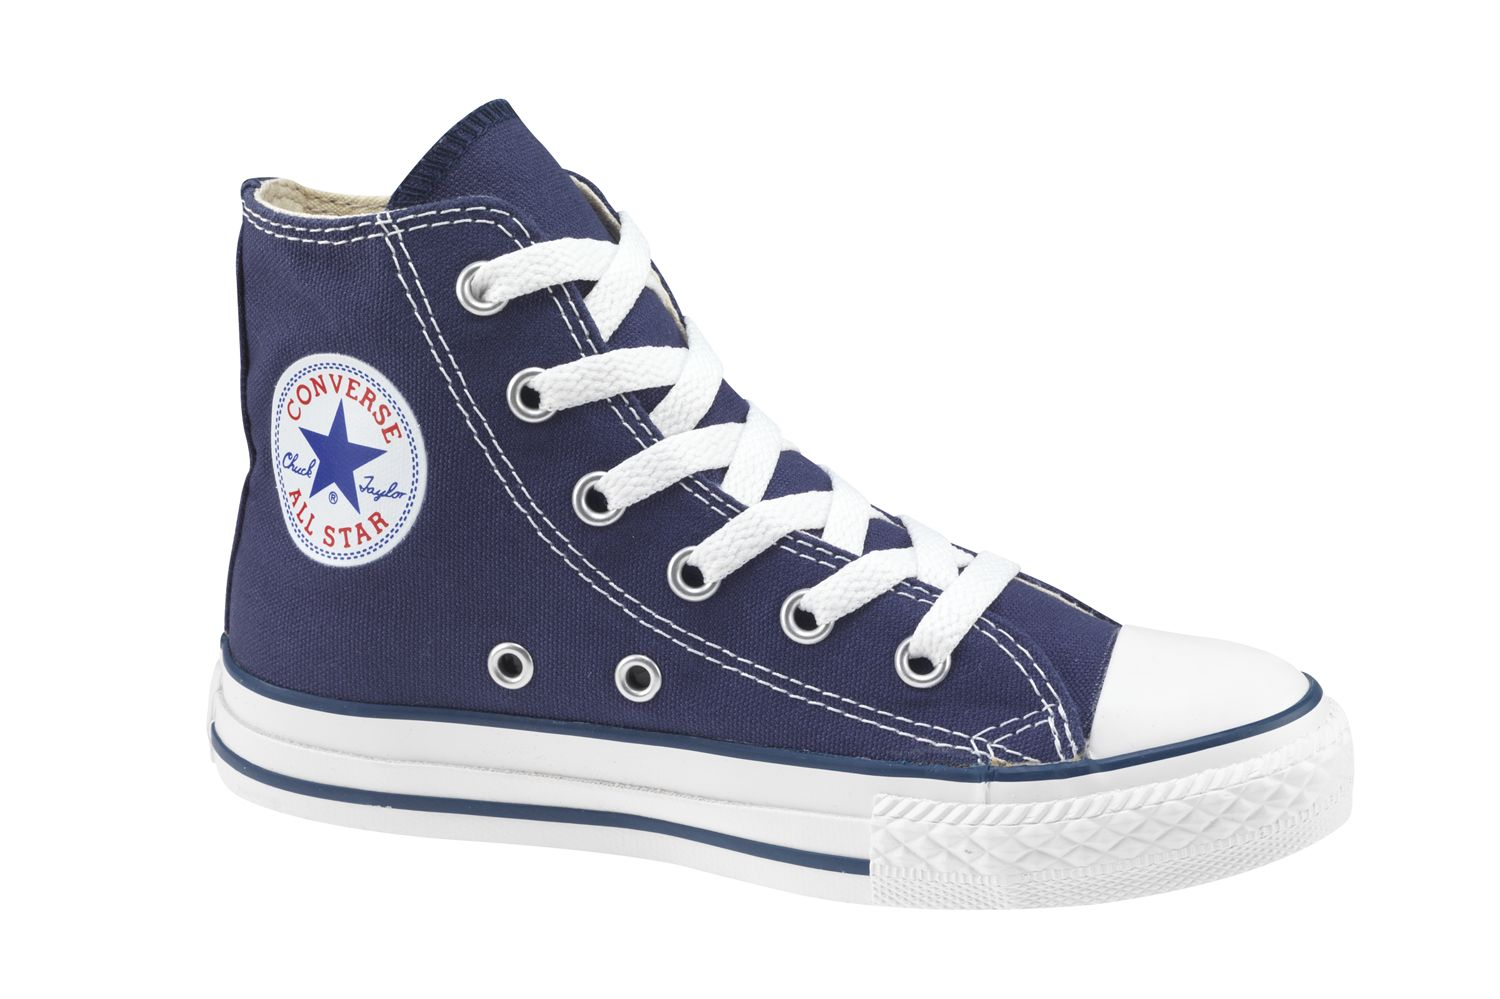 Converse Chuck Taylor All Star Core High Top Sneaker Childrens Sneakers